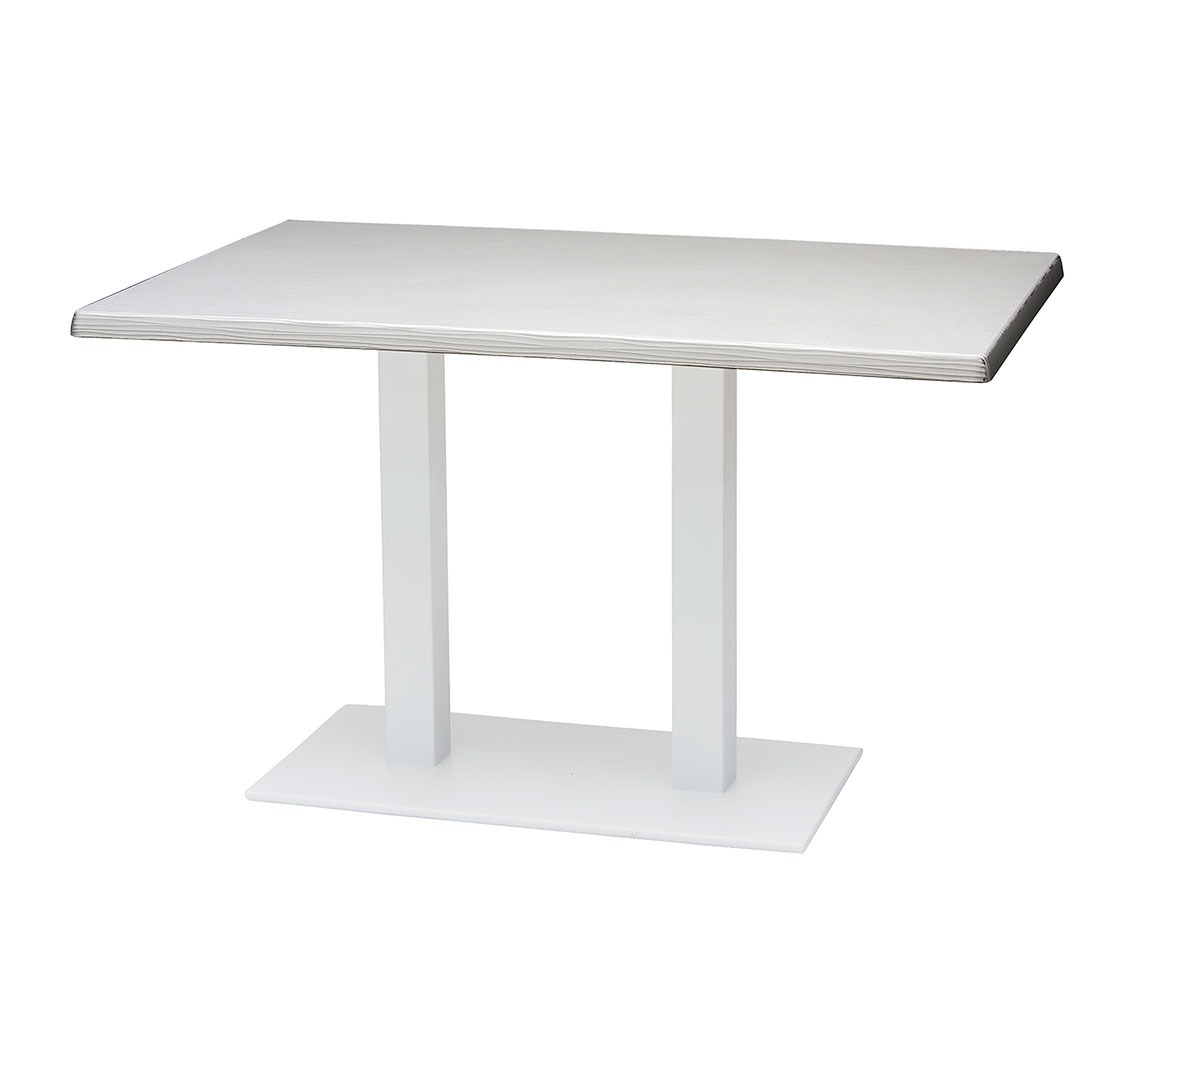 Mesa Sidney a 75 rectangular aluminio color blanco texturado tablero top mar blanco